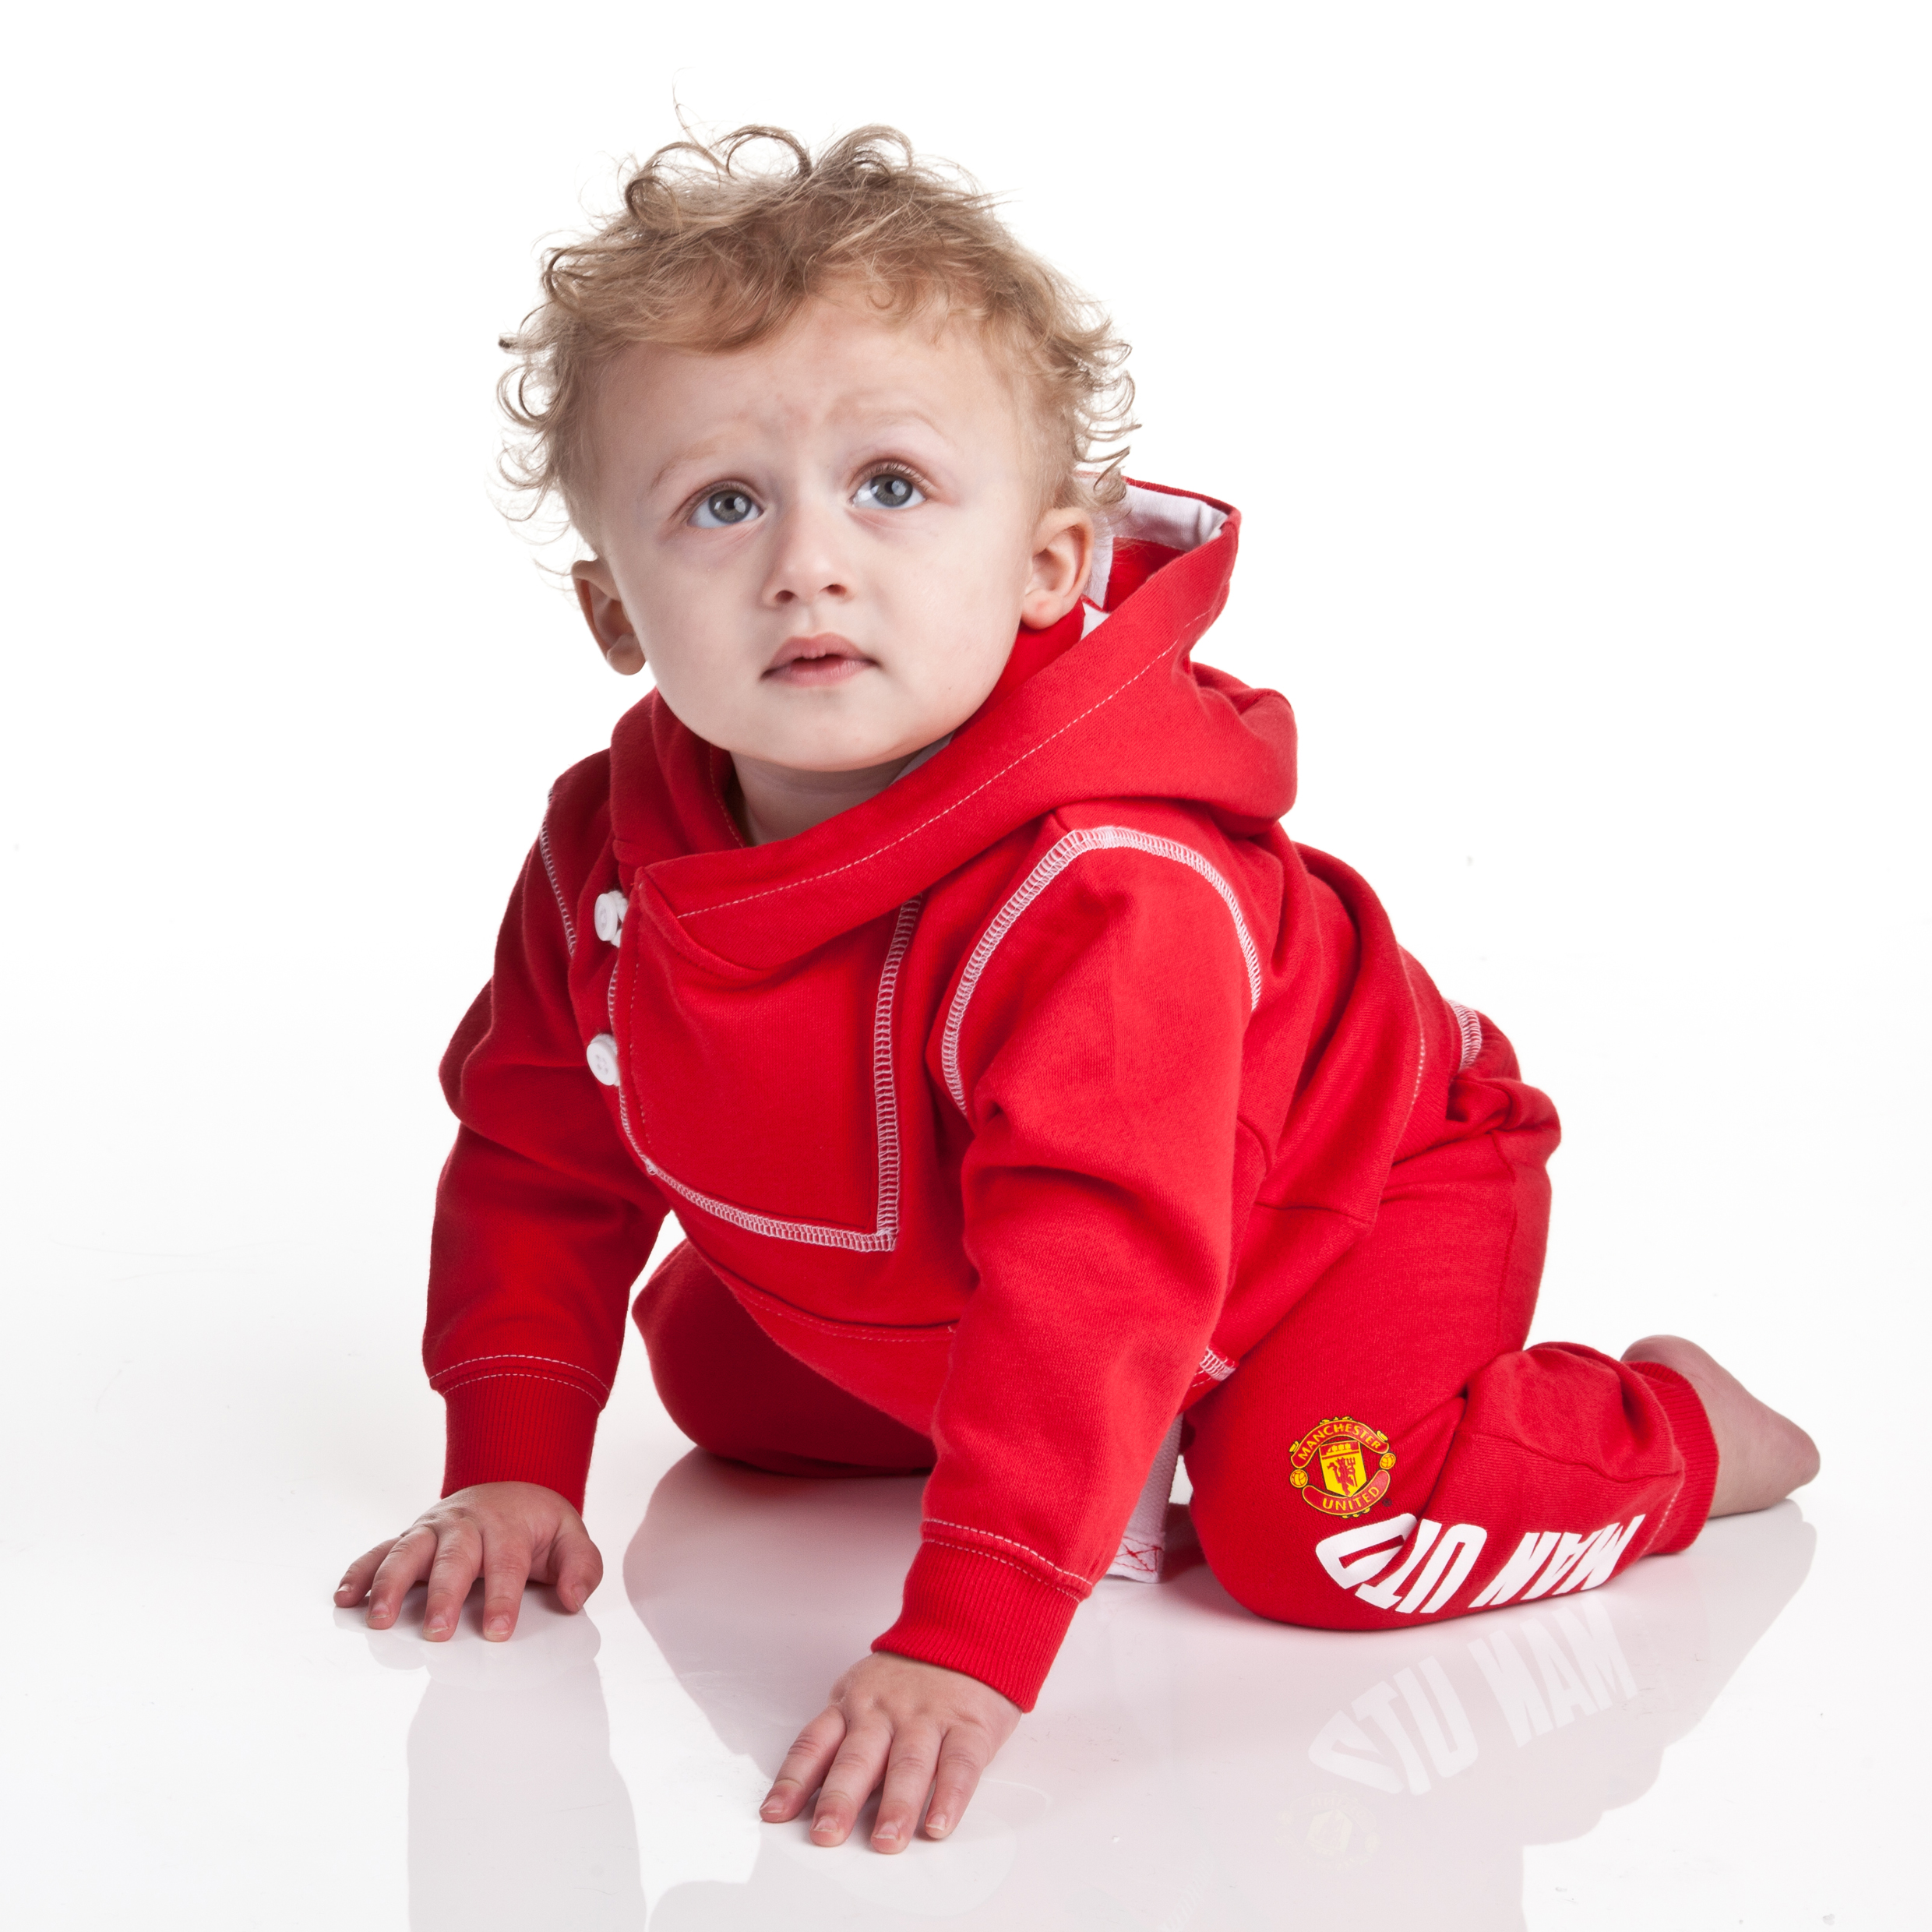 Manchester United Hooded Jog Suit - Red - Baby Boys